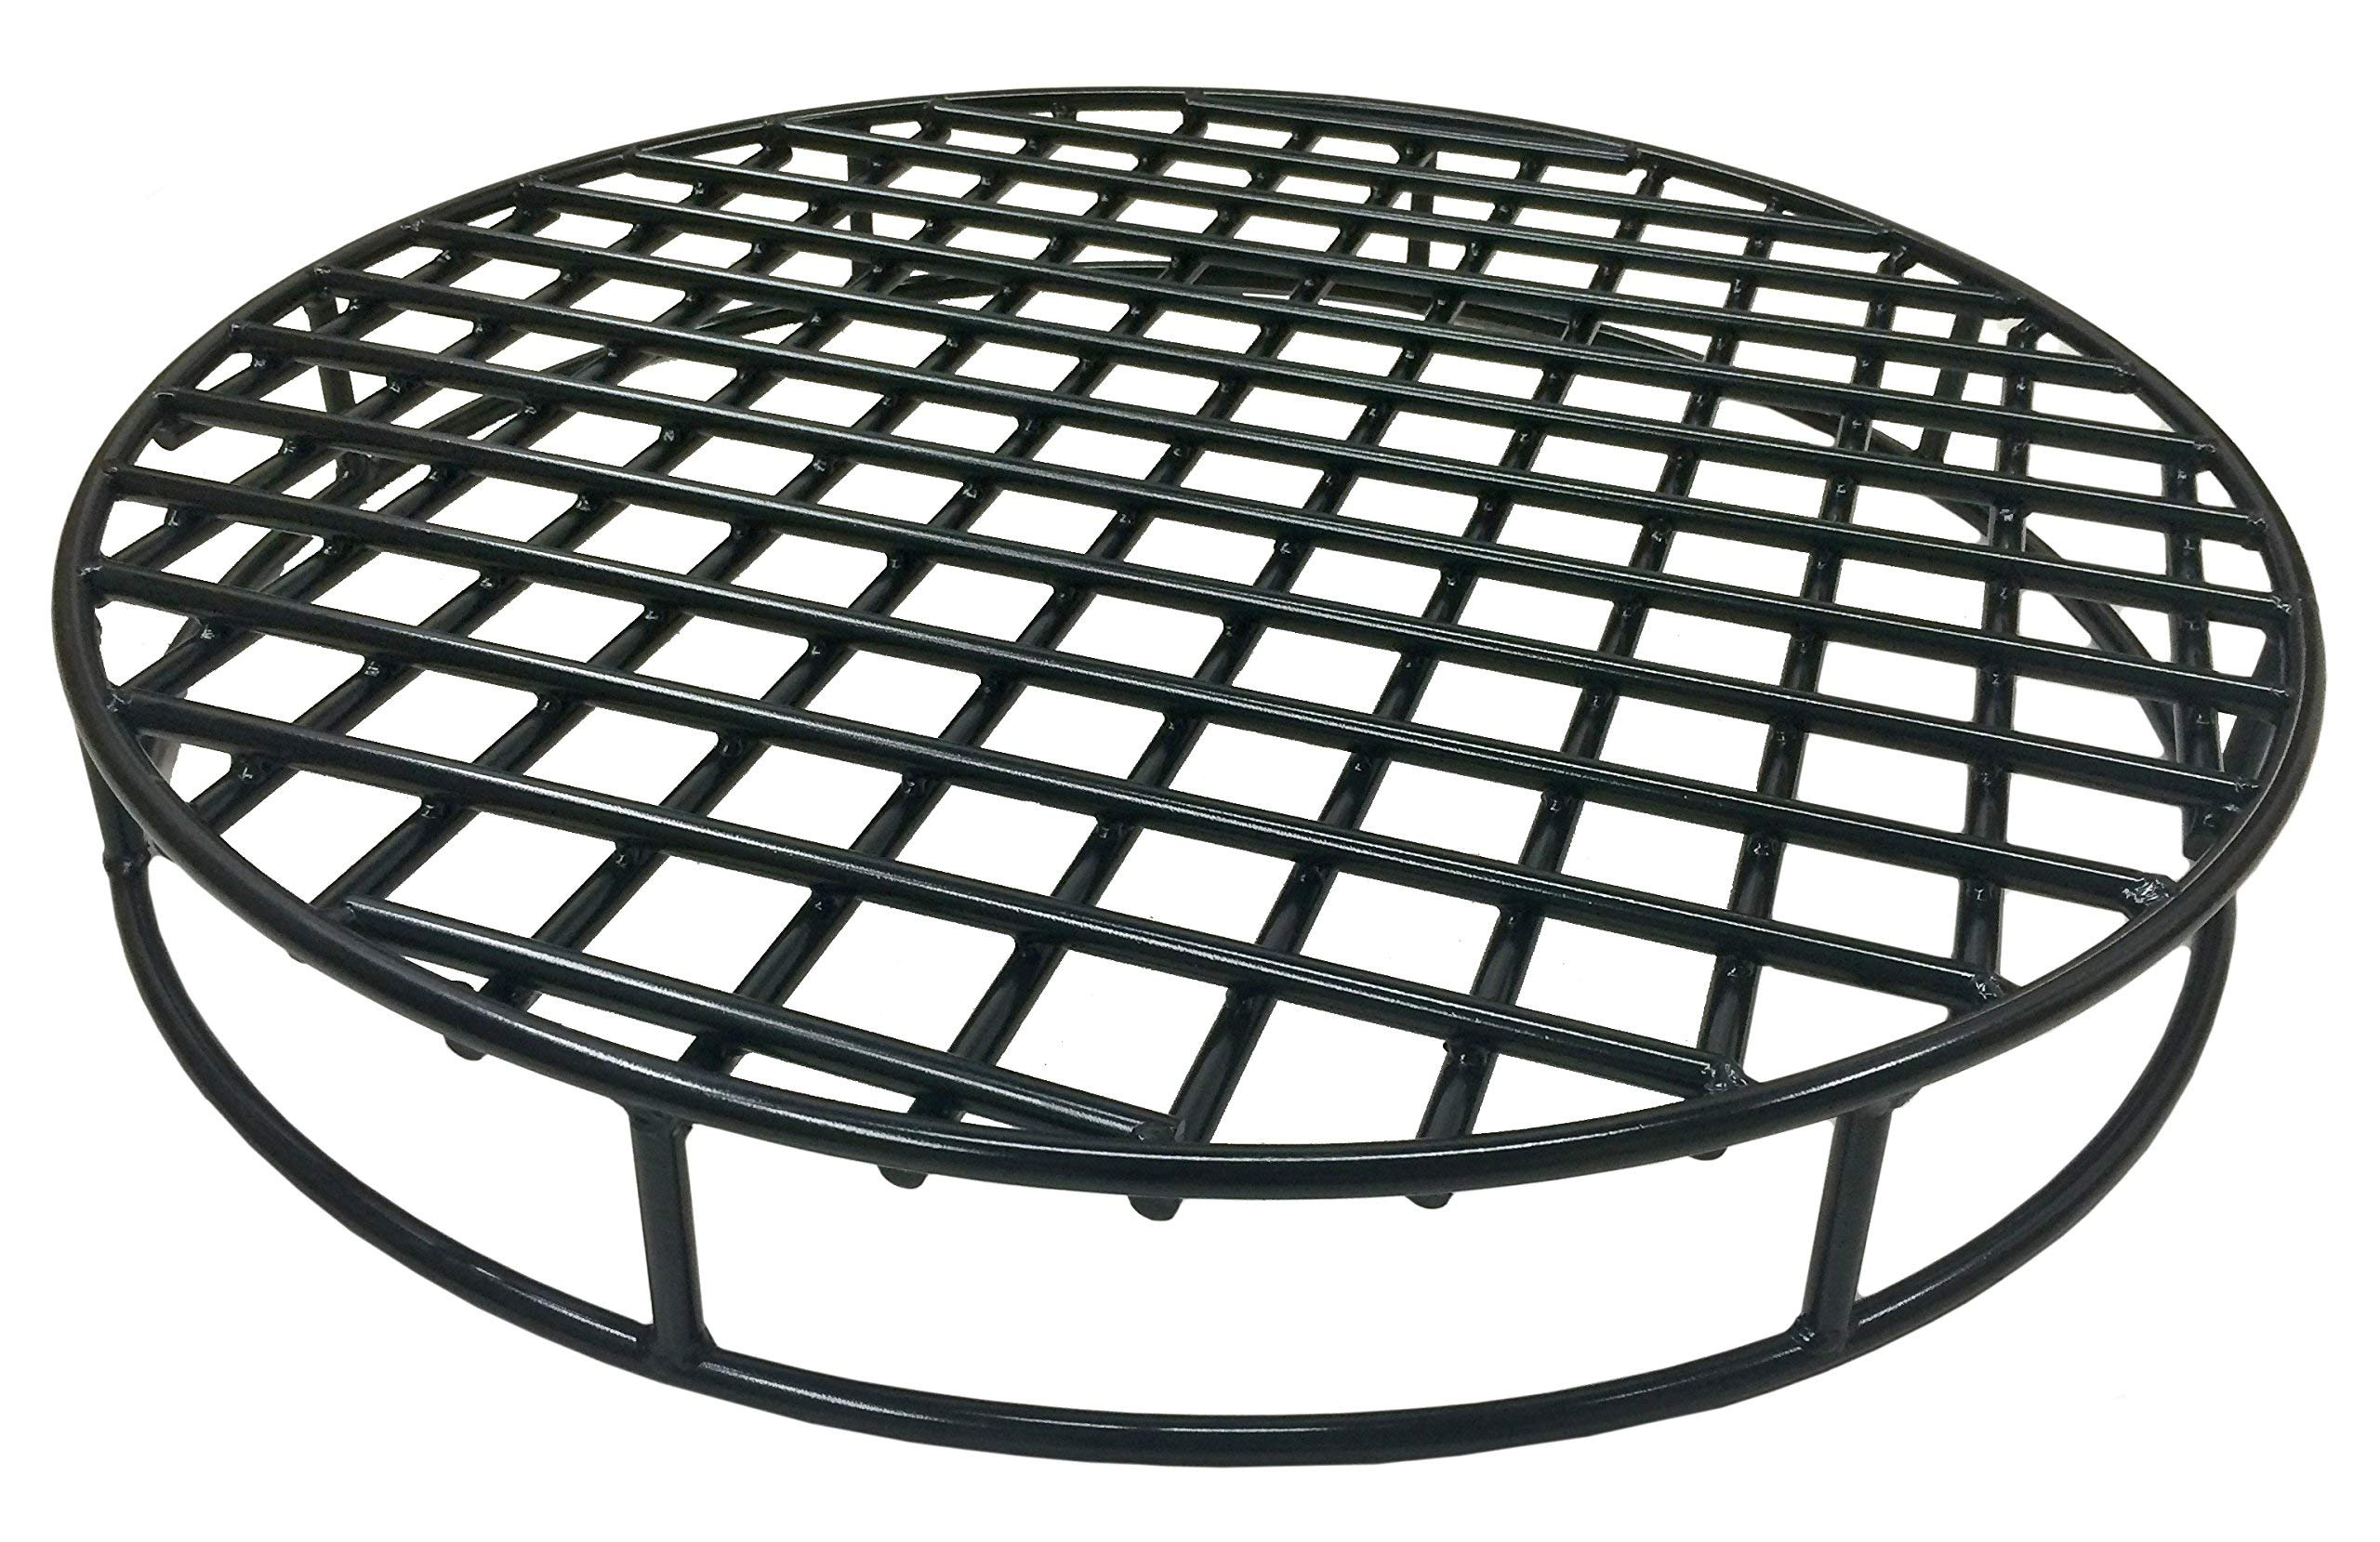 Walden Fire Pit Grate Round - Premium Heavy Duty Steel Grate for Outdoor Firepits - Above Ground Fire Grate (29.5'') by Walden Backyards